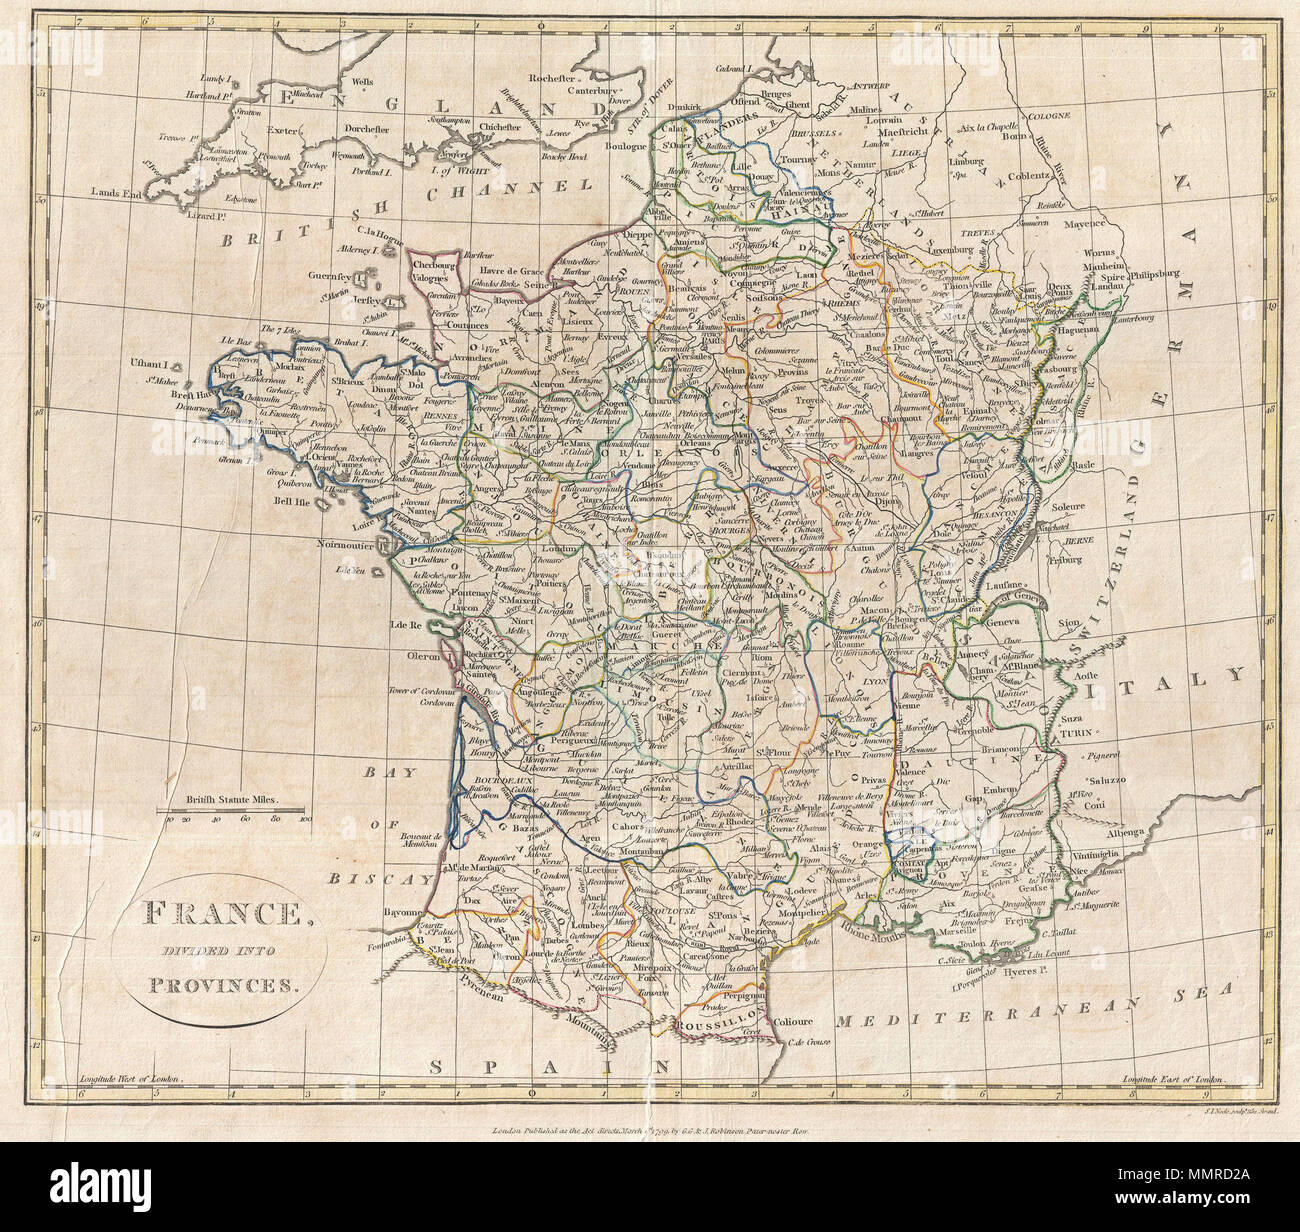 English Map Of France.English A Fine 1799 Map Of France Divided Into Provinces By The